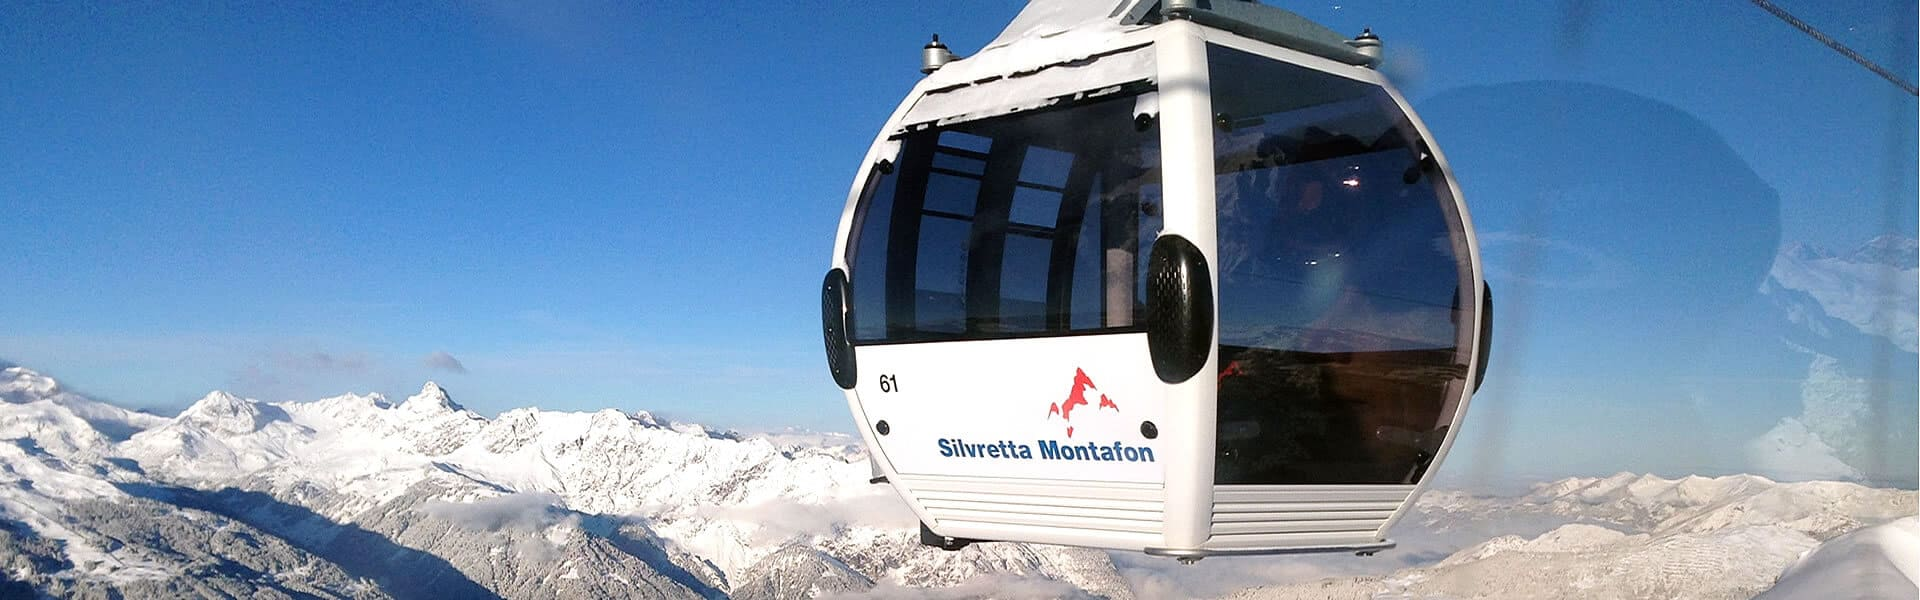 75 lifts and 292 km of slopes in Montafon